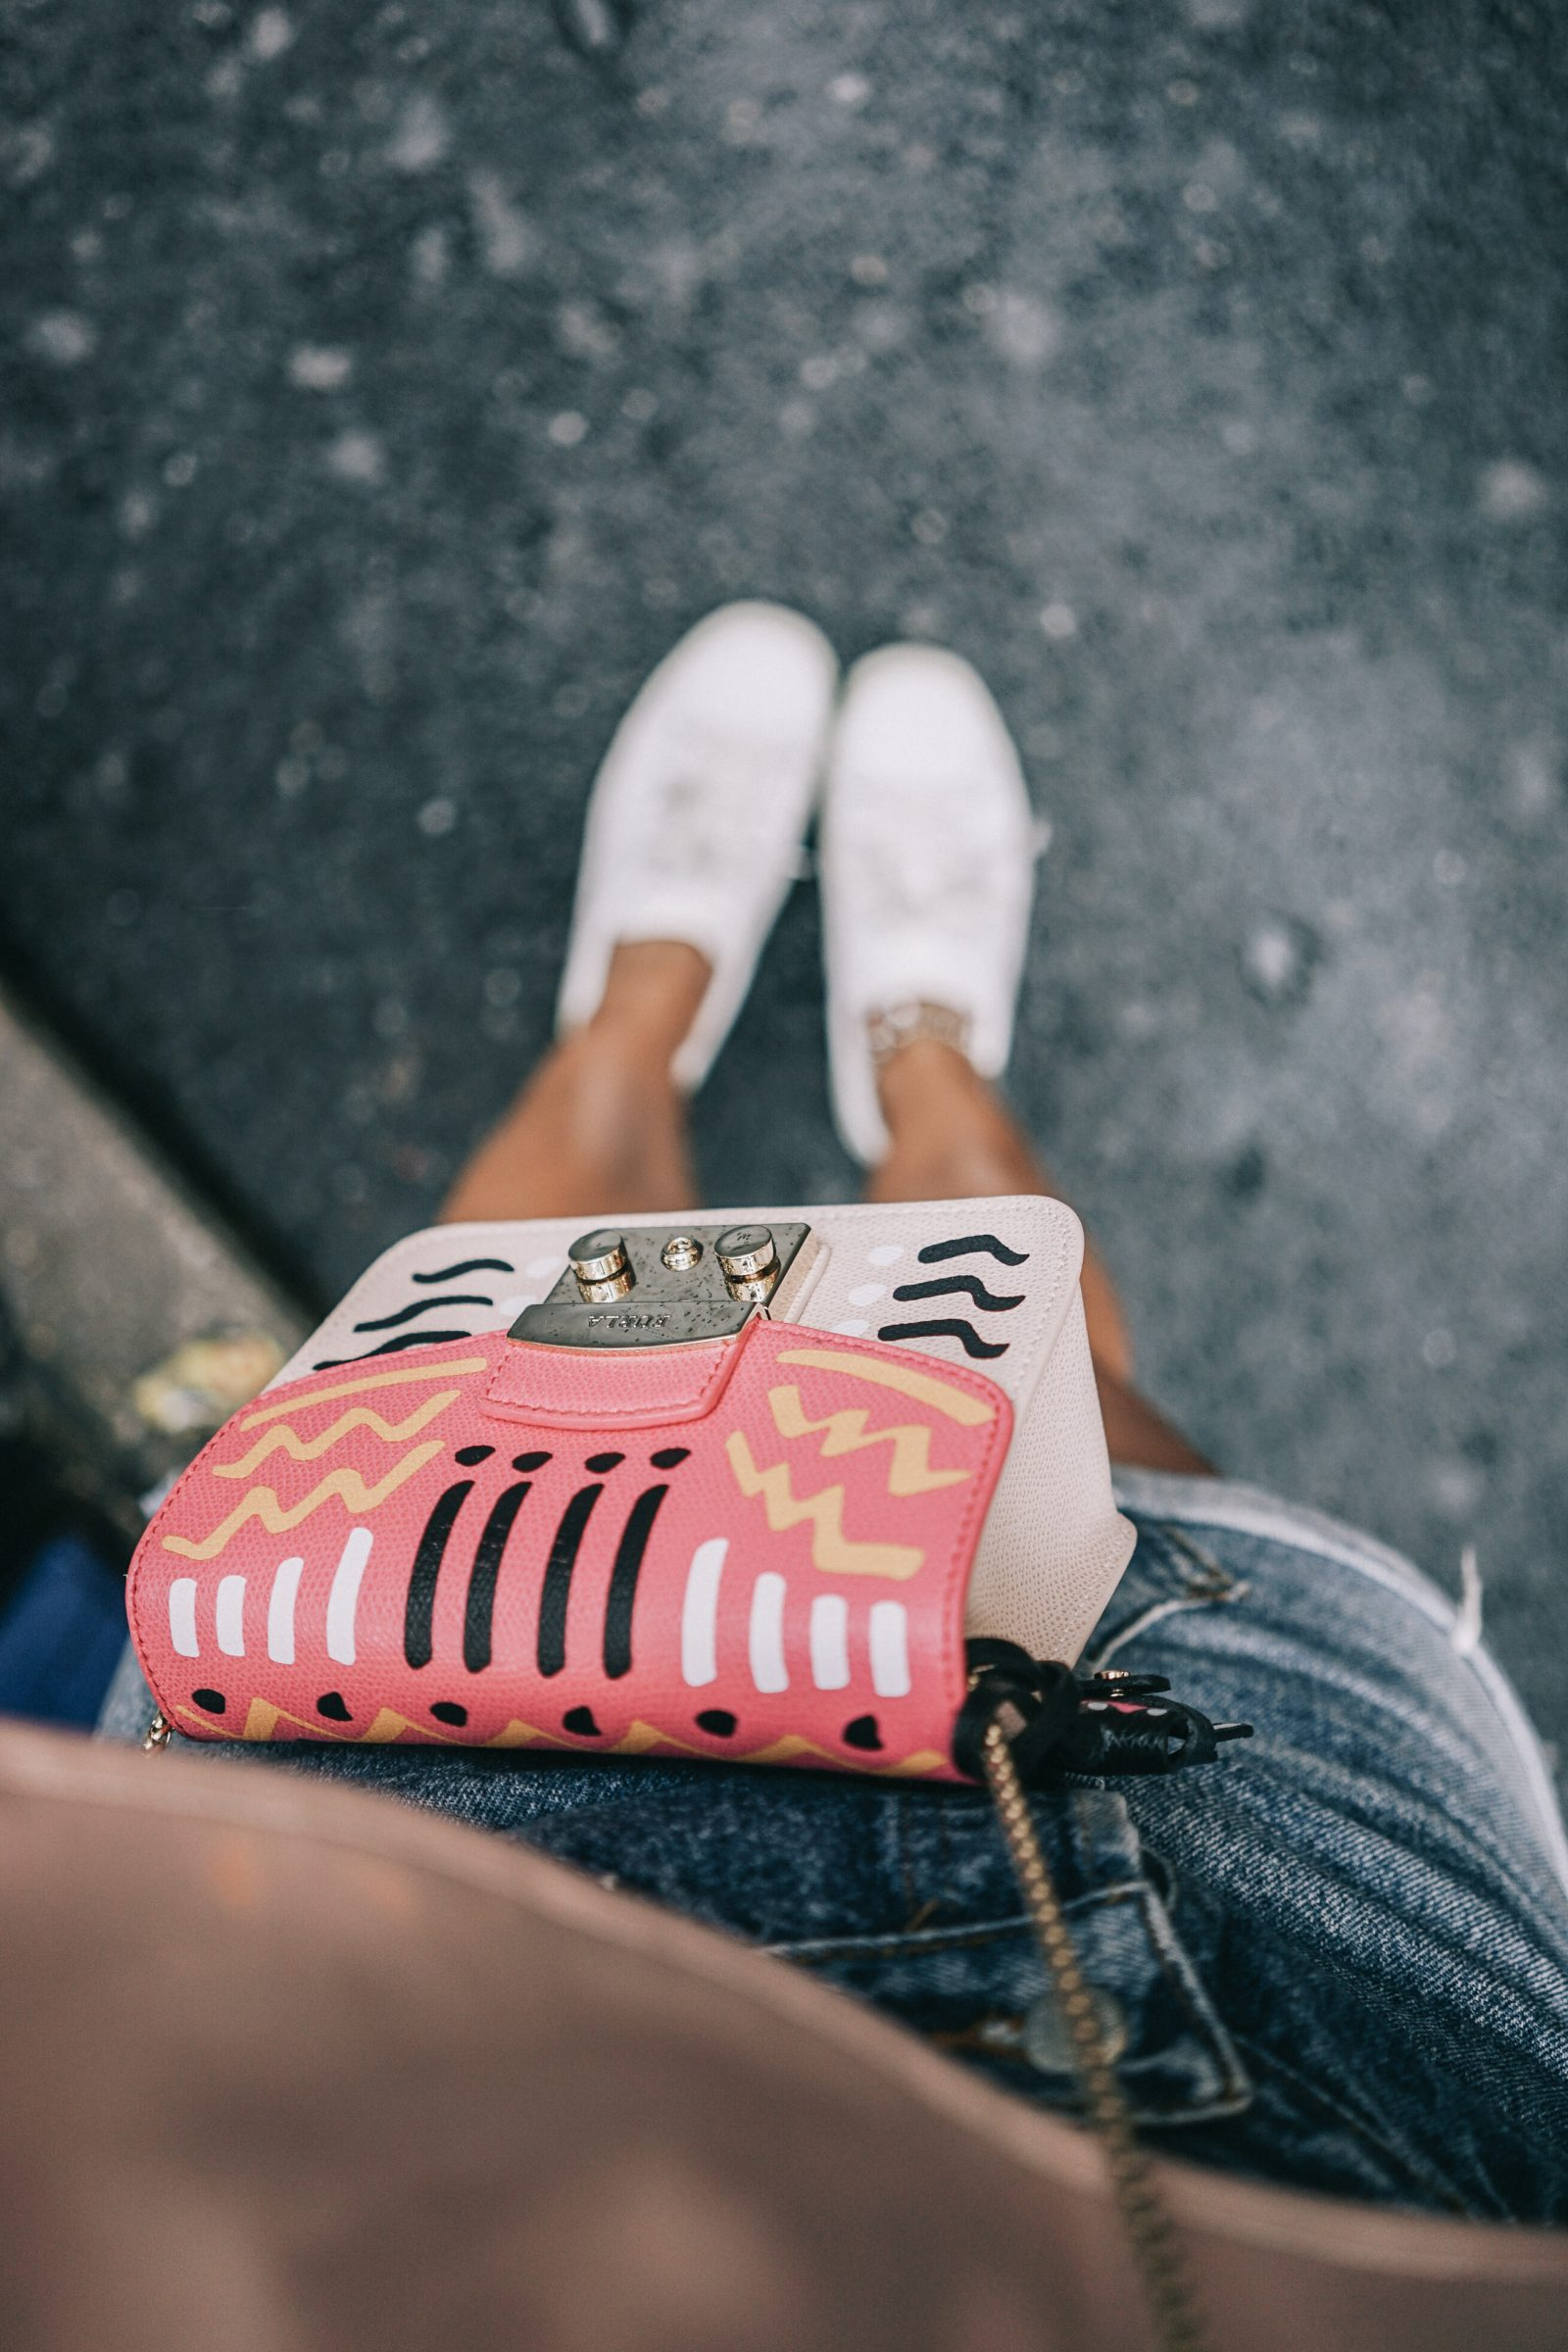 Tokyo_Travel_Guide-Fish_Market-Harajuku-Levis_Denim_Skirt-Off_The_Shoulders_Top-YSL_Sneakers-Outfit-Collage_Vintage-Street_Style-132